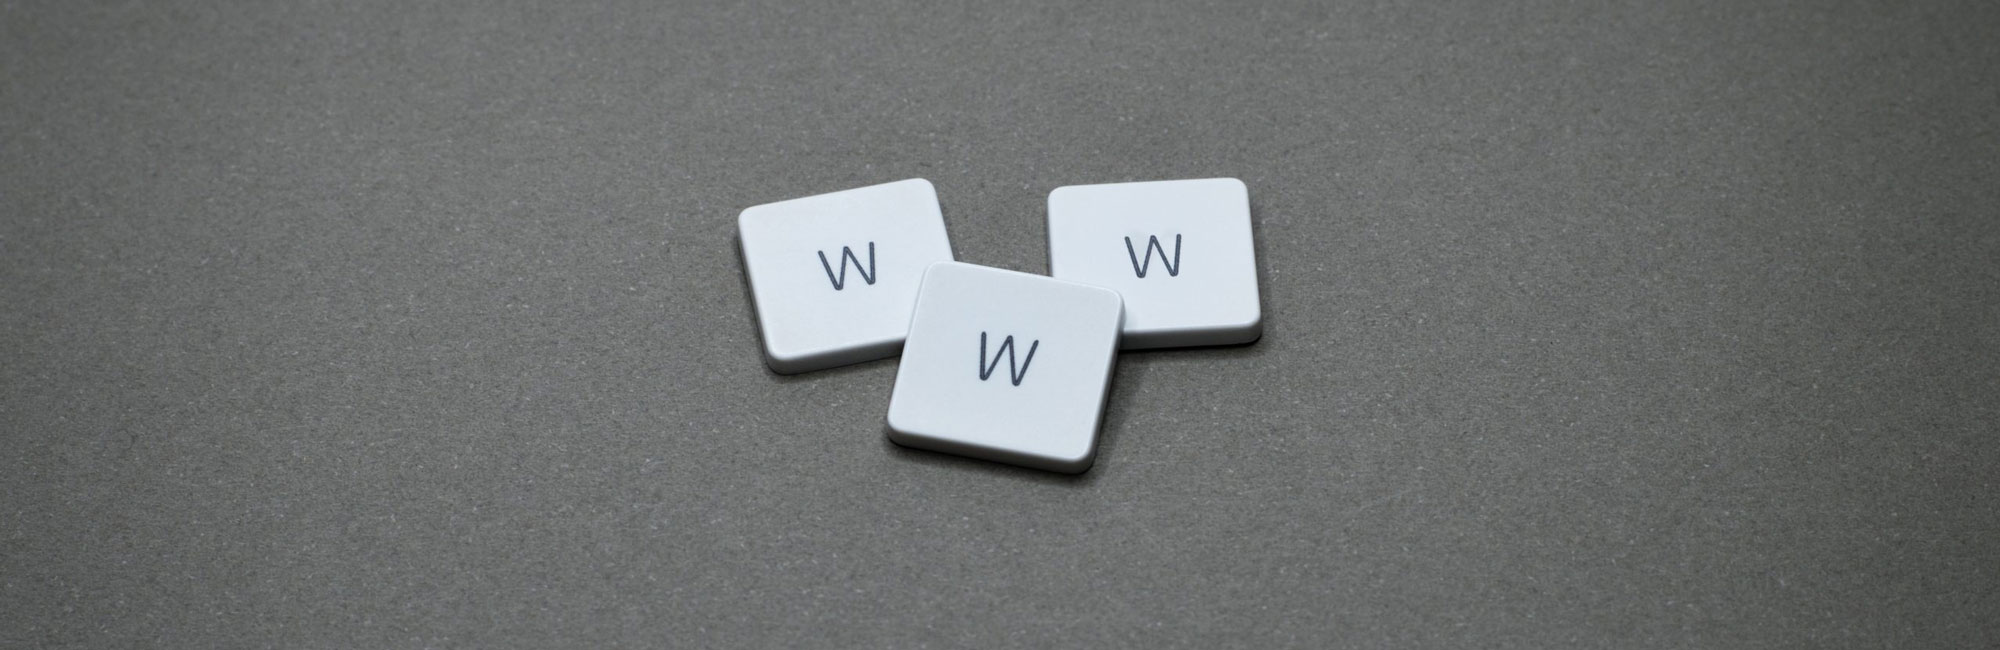 Three WWW keyboard keys